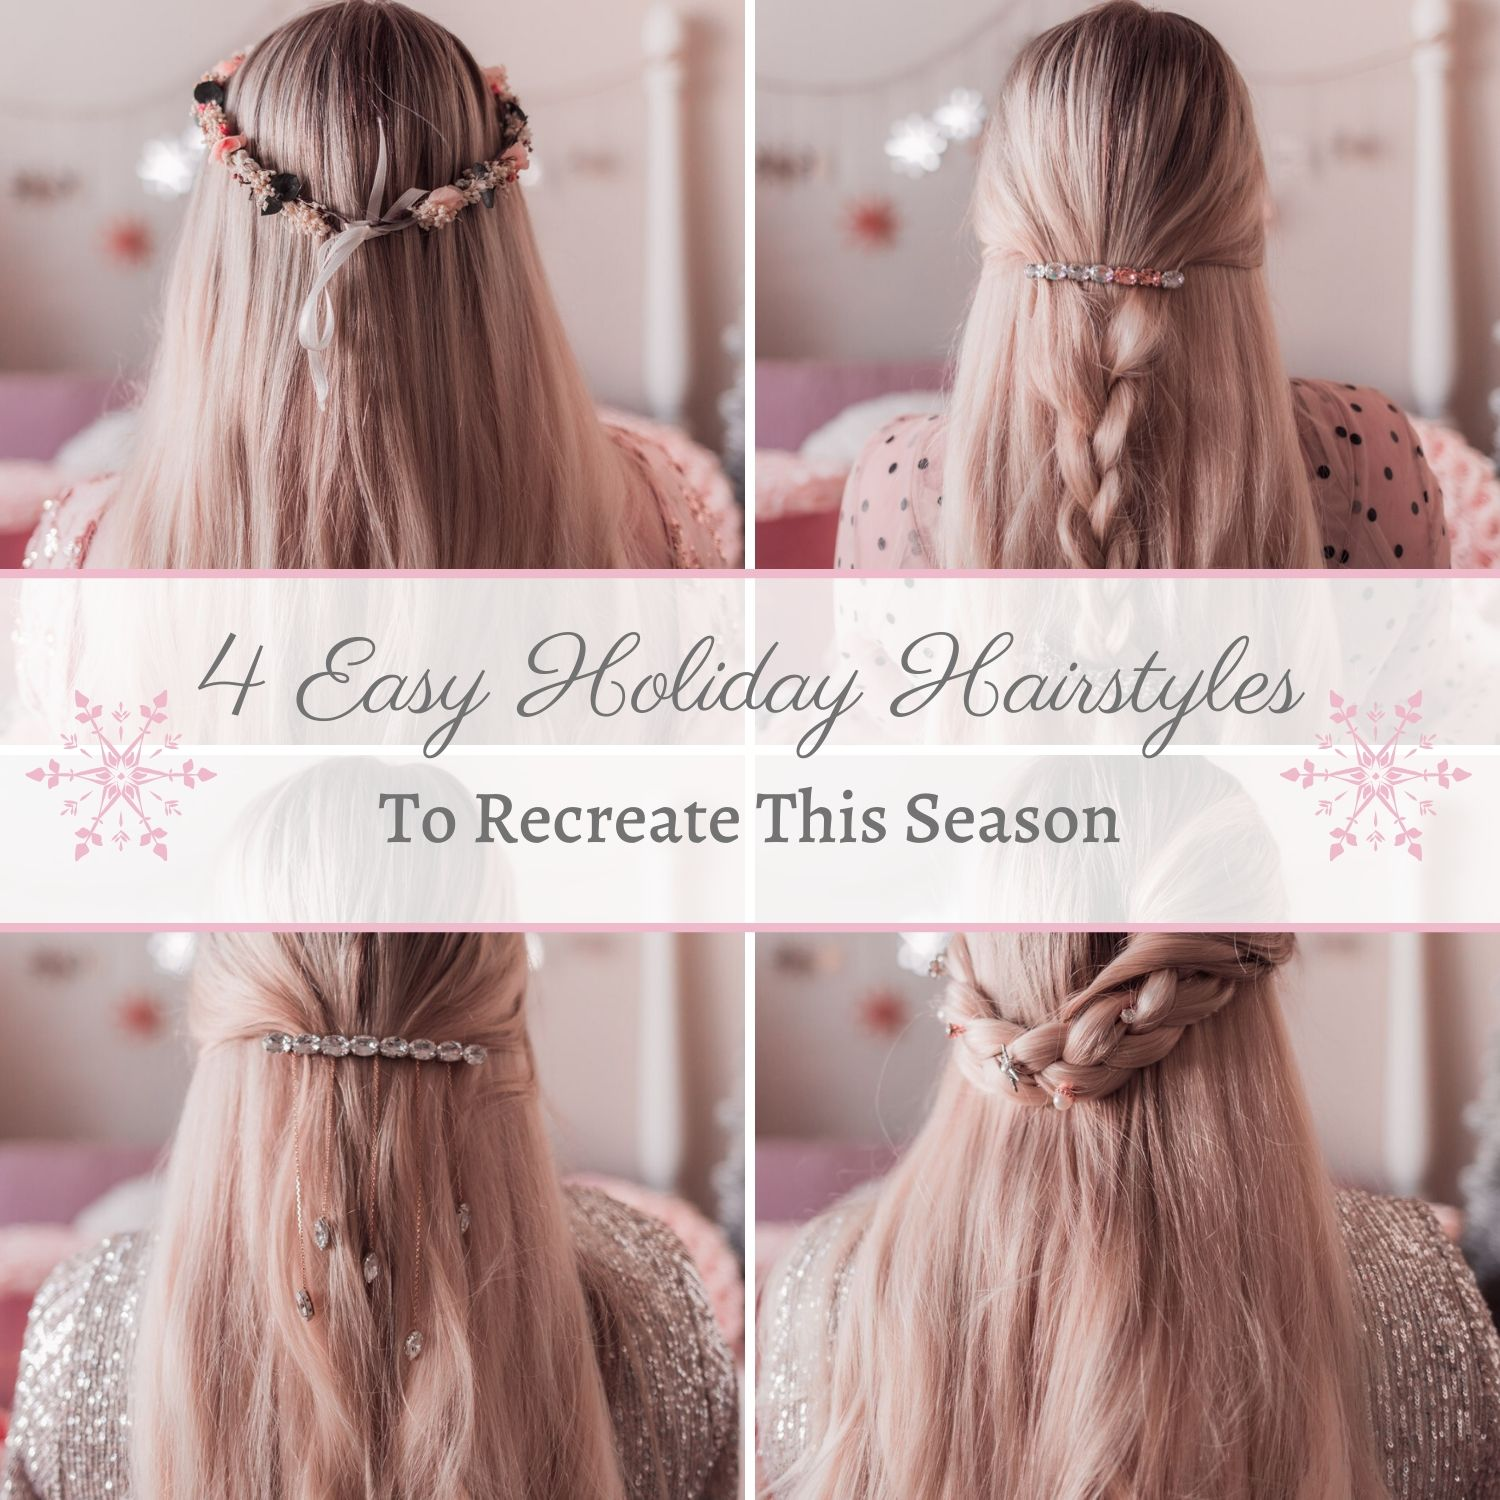 4 Easy Holiday Hairstyles to Recreate This Season